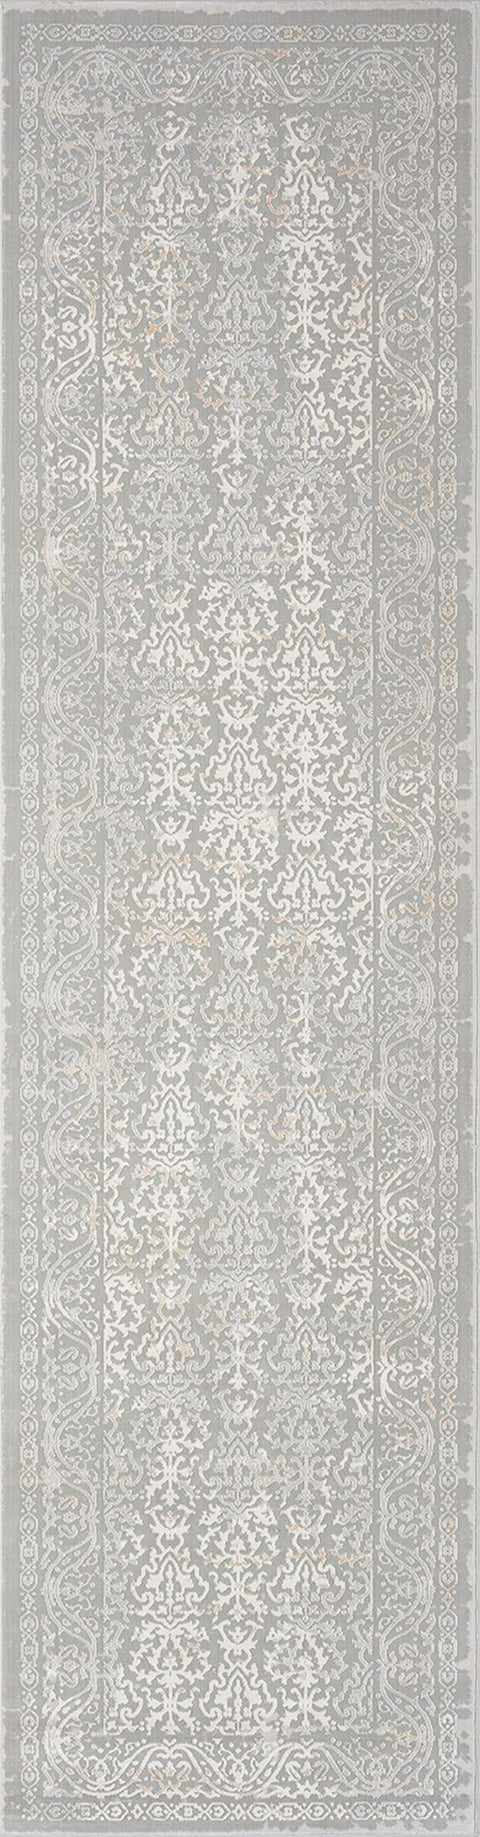 Aylin Cream Ivory and Grey Traditional Floral Runner Rug